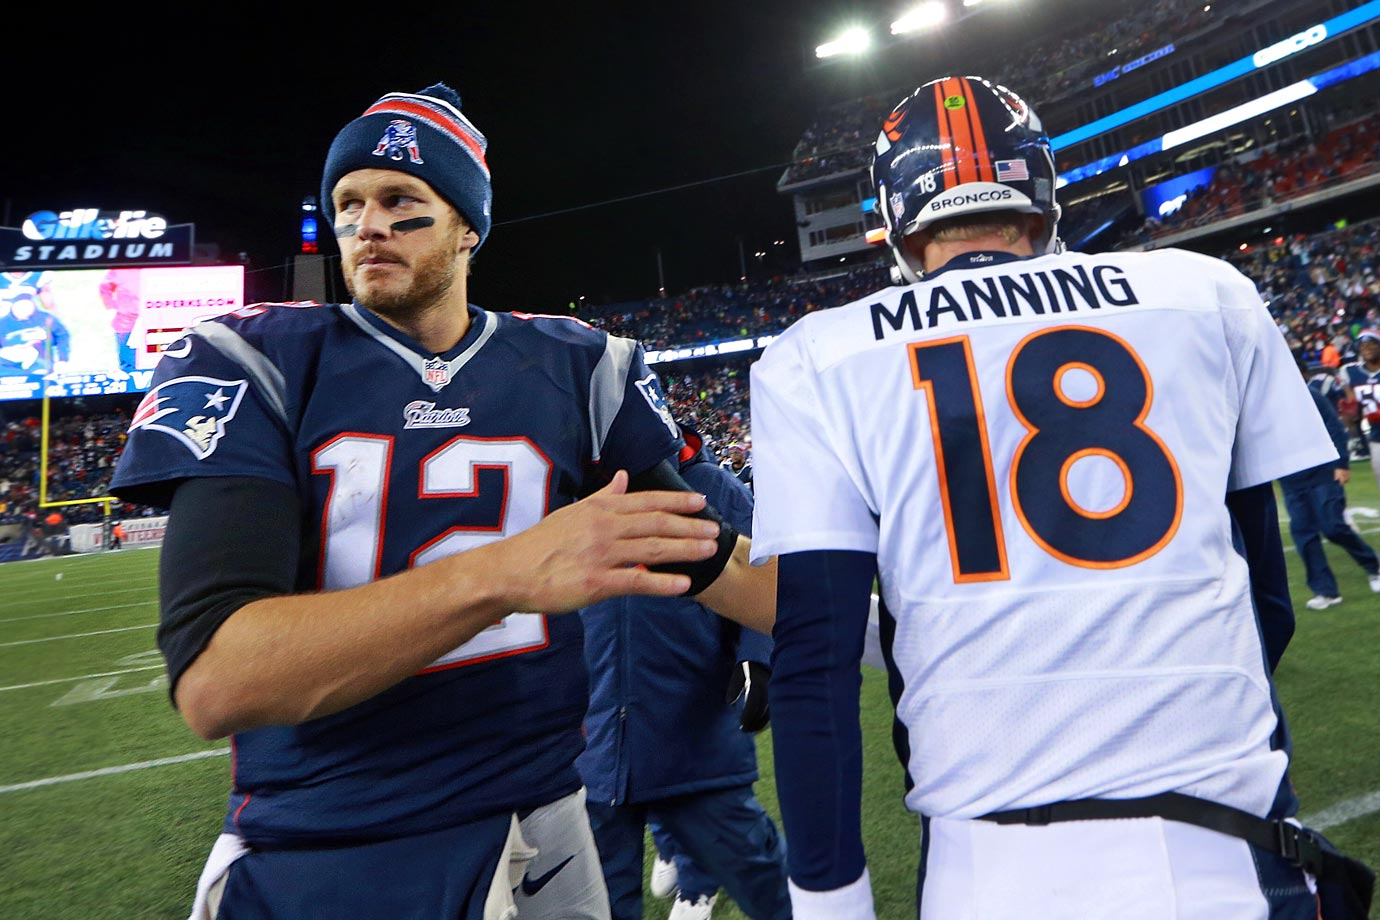 New England continued to steamroll opponents with a 43-21 win over Denver in a rematch of last season's AFC Championship game. Brady threw for four touchdowns and 333 yards, while Peyton Manning threw for 438 yards and two scores. Manning and Brady combined for 110 pass attempts, while Gronkowski caught nine passes for 105 yards.